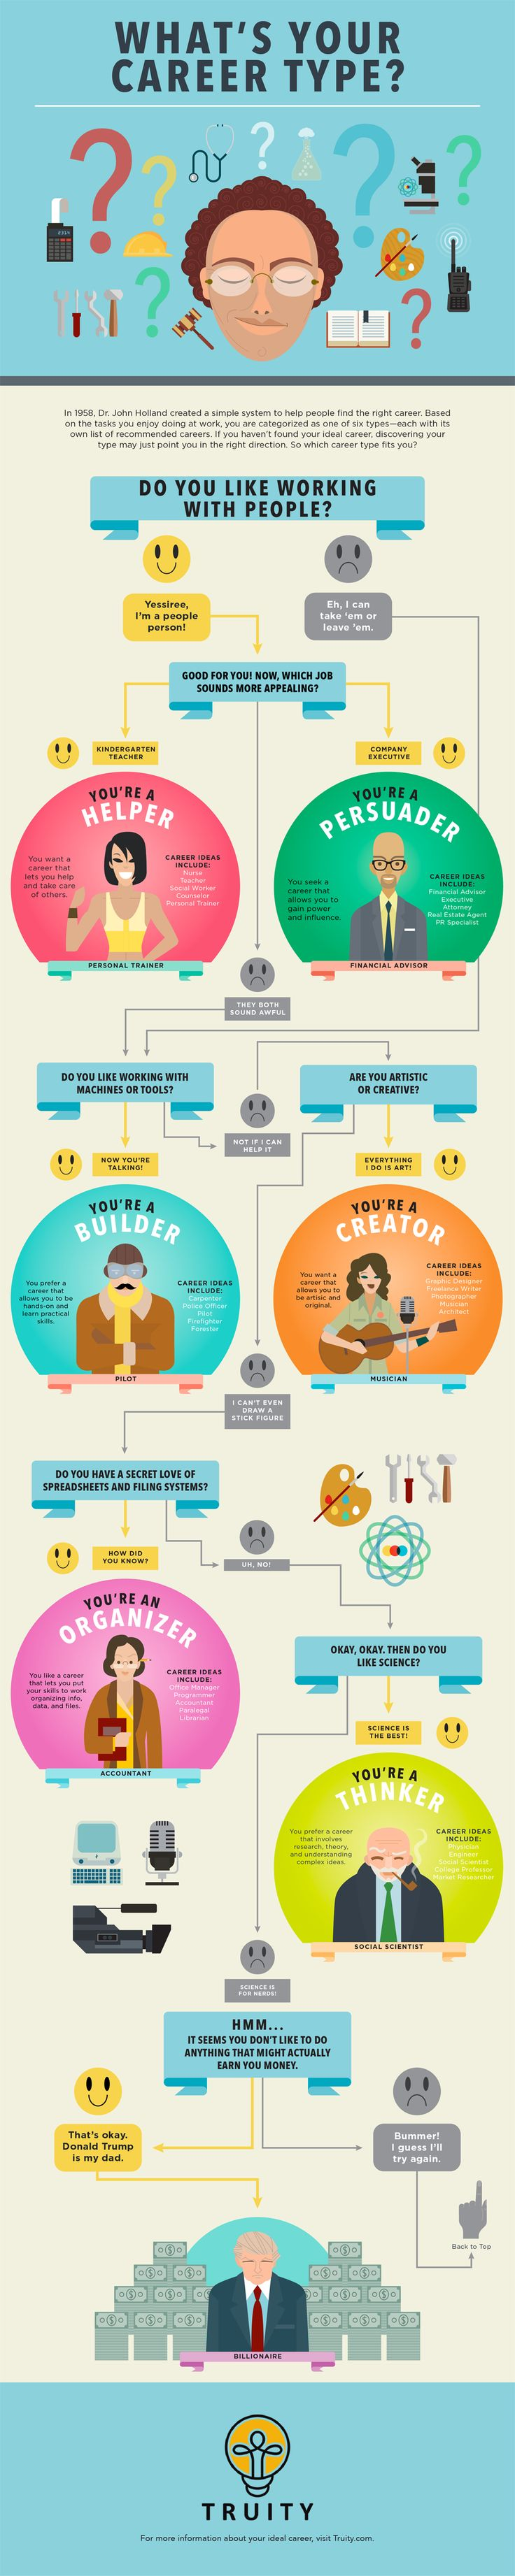 What is the best type of career for your personality